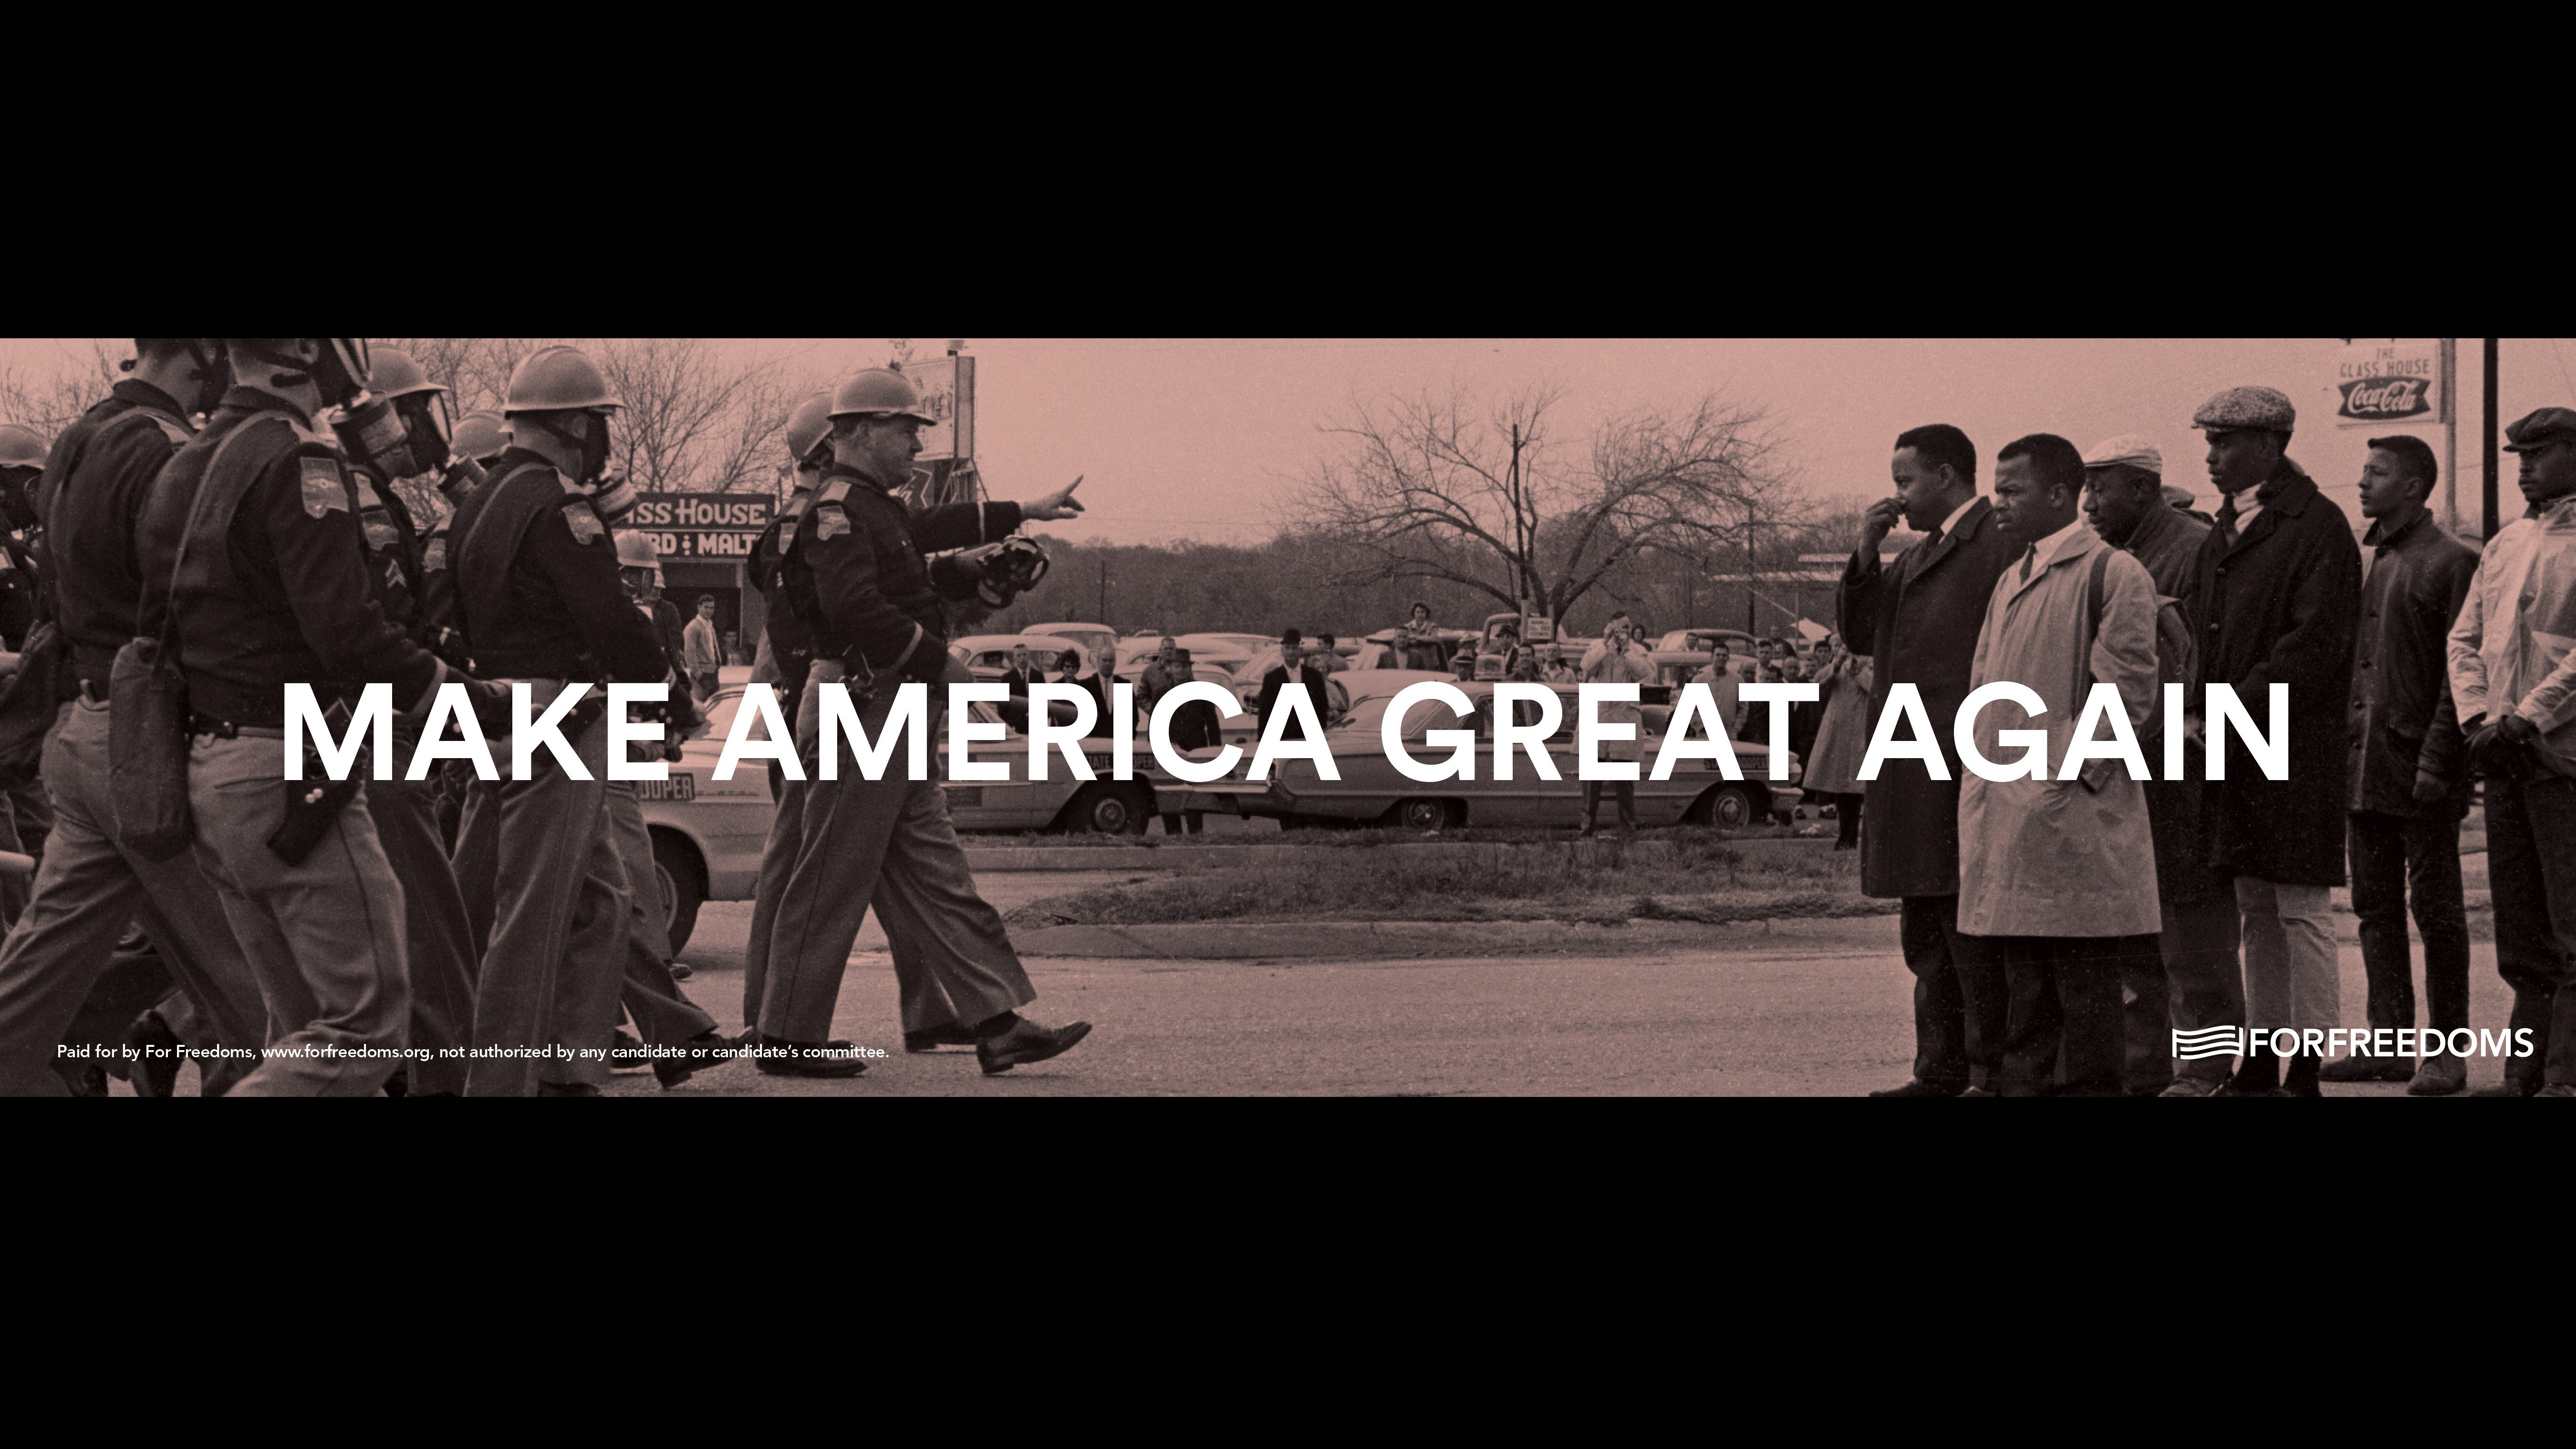 """A provocative roadside billboard in Mississippi that mixes art and politics has united onlookers in anger and confusion. The sign on Highway 80 outside Pearl features President-elect Donald Trump's campaign slogan, """"Make America Great Again,"""" superimposed on a well-known Civil Rights-era image by photographer Spider Martin."""